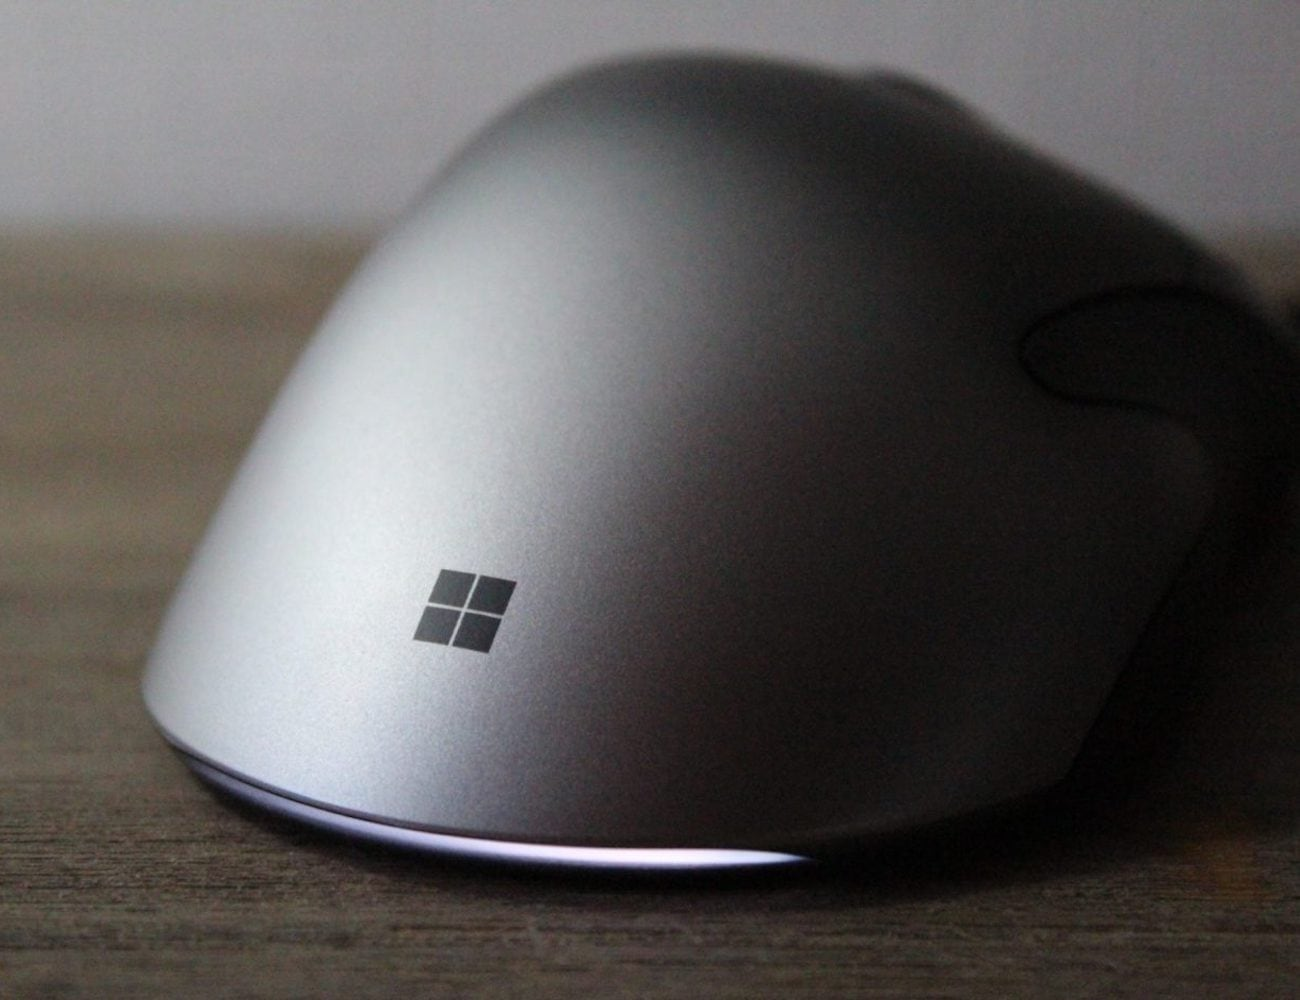 Microsoft Pro IntelliMouse Super-Precise Gaming Mouse has customizable buttons